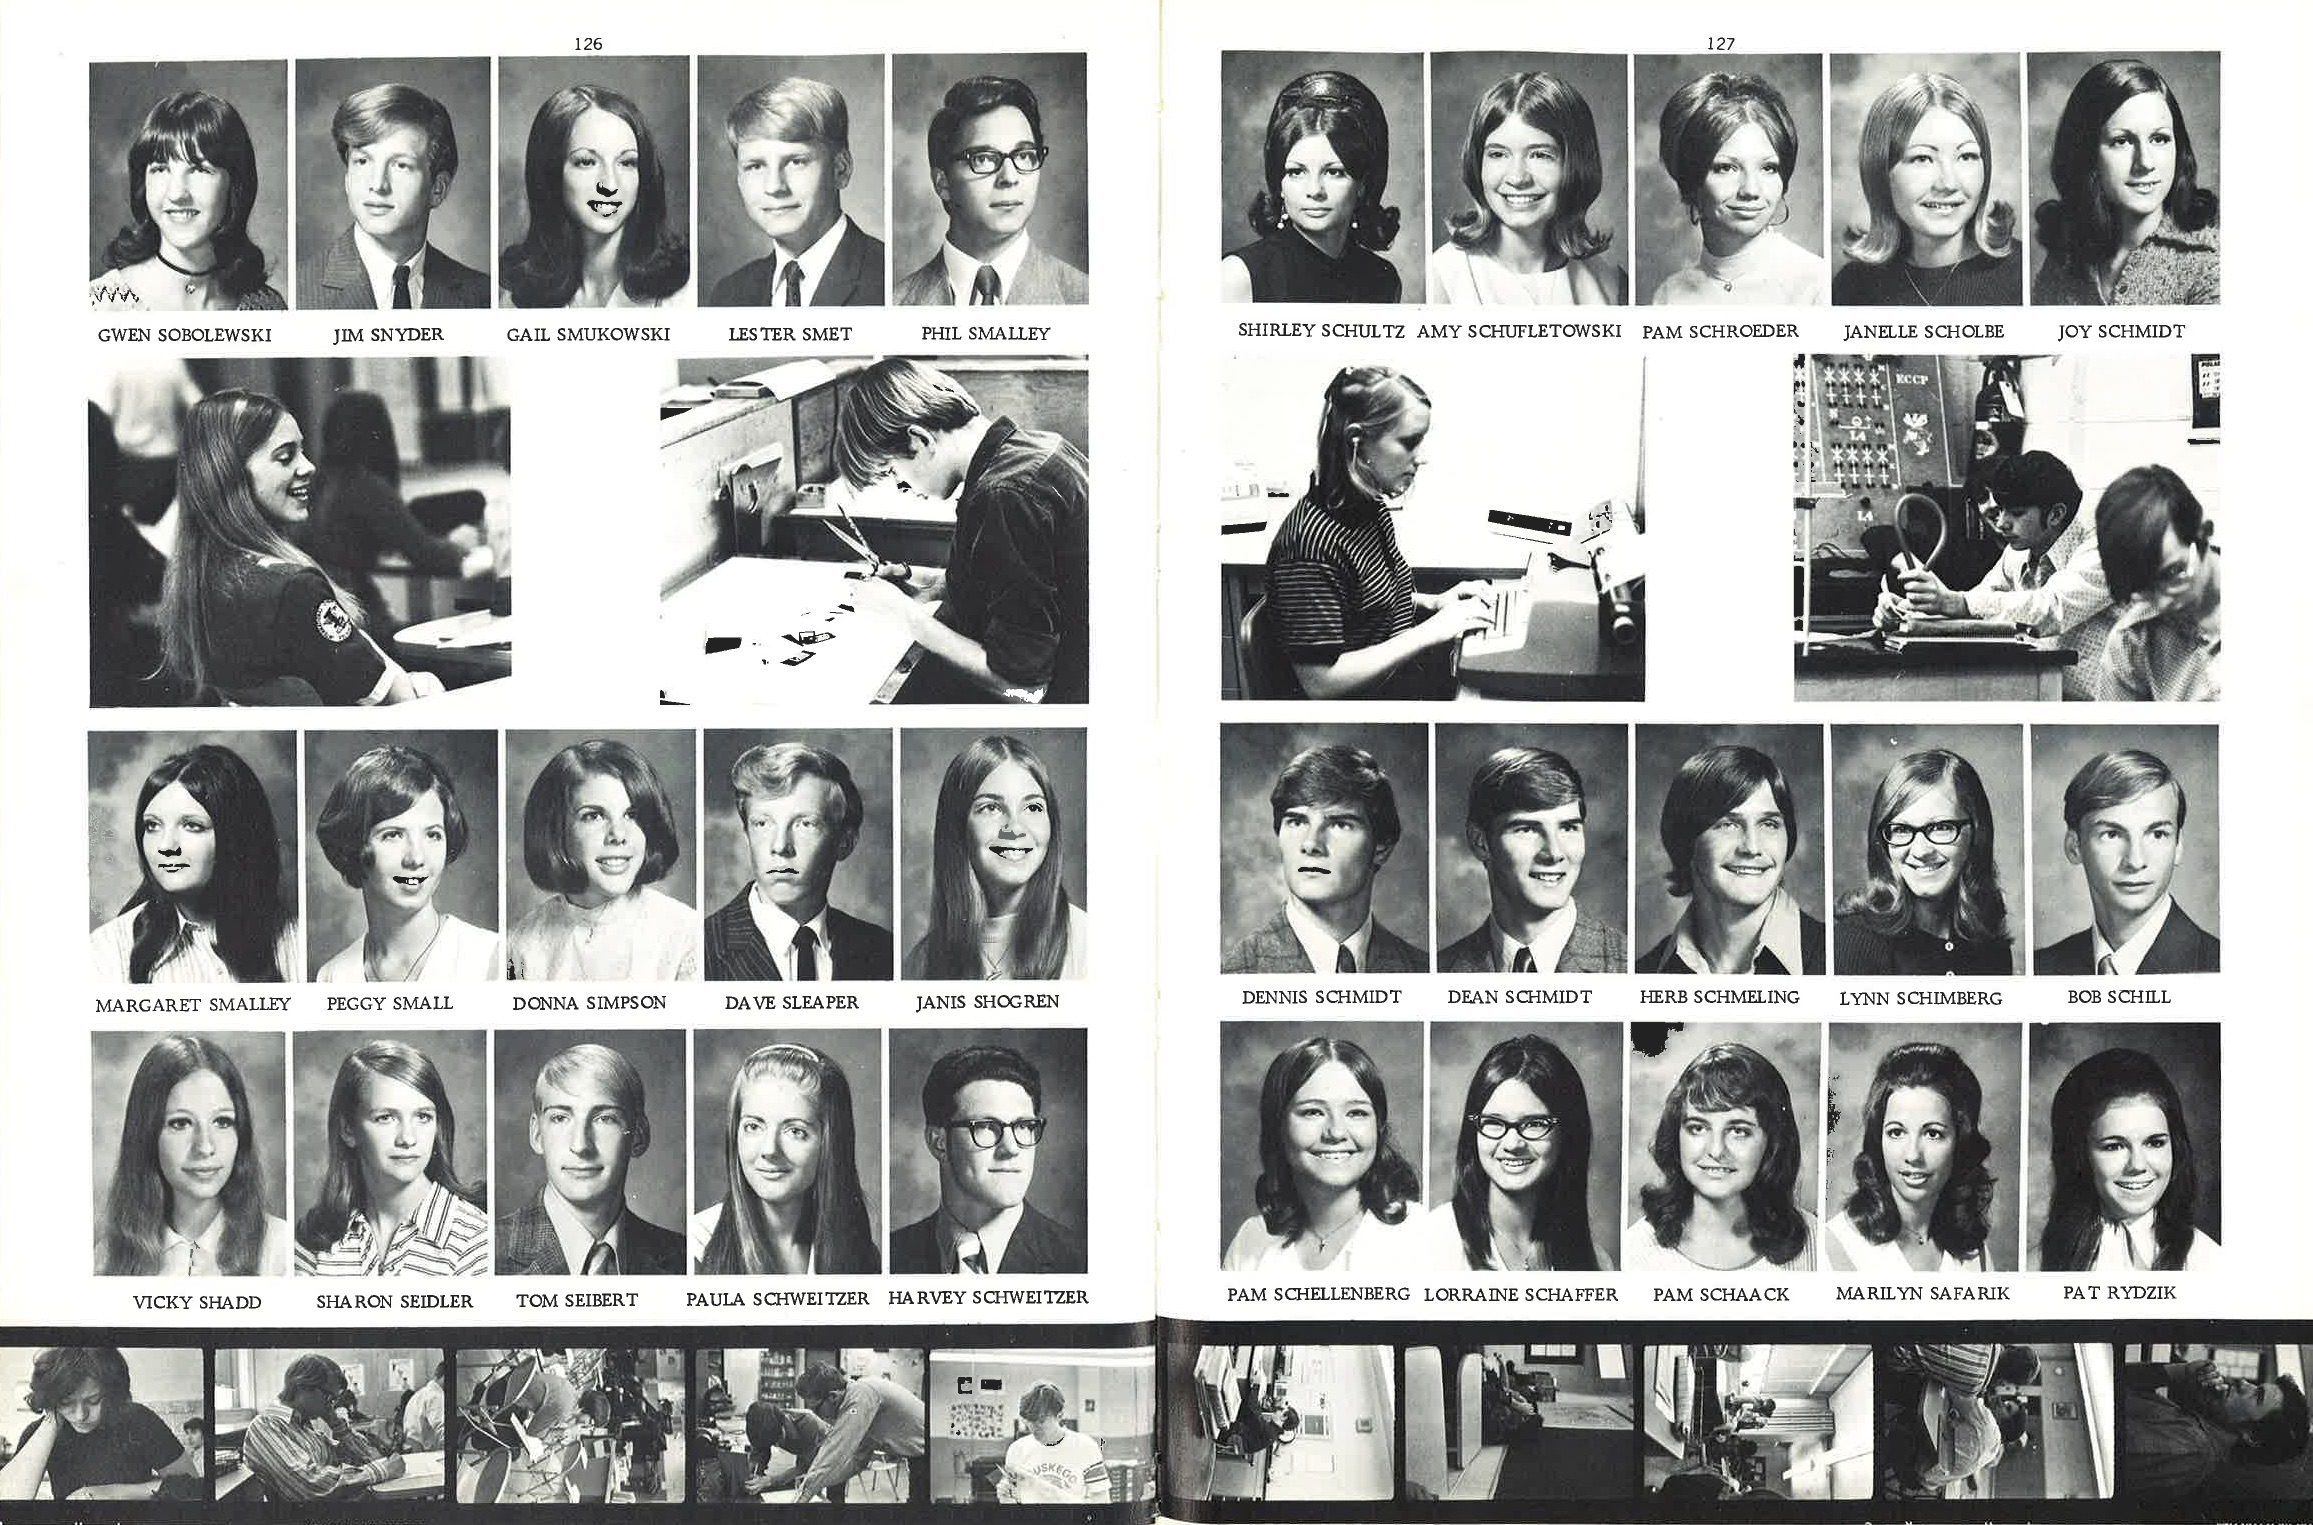 1972_Yearbook_126-127.jpg